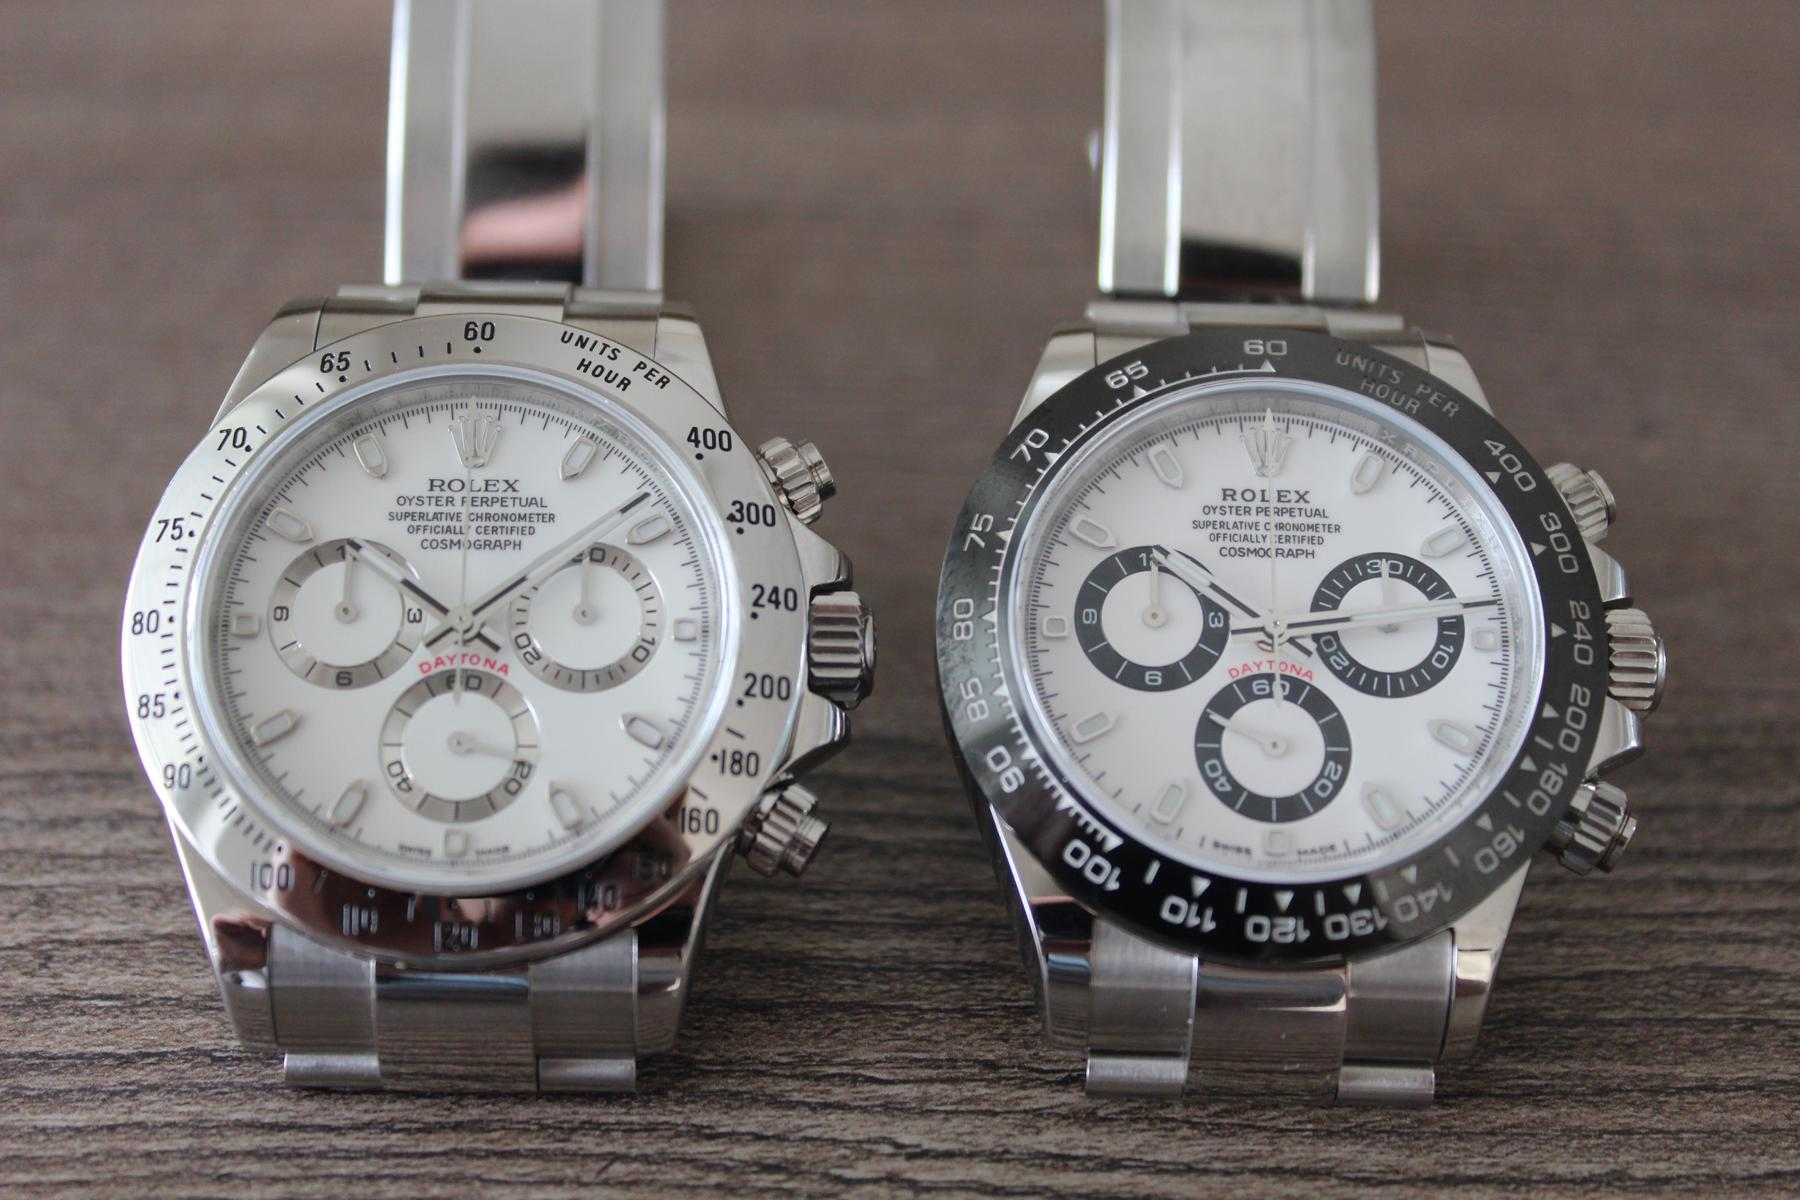 Noob – Susan Evaluations On Replica Watches